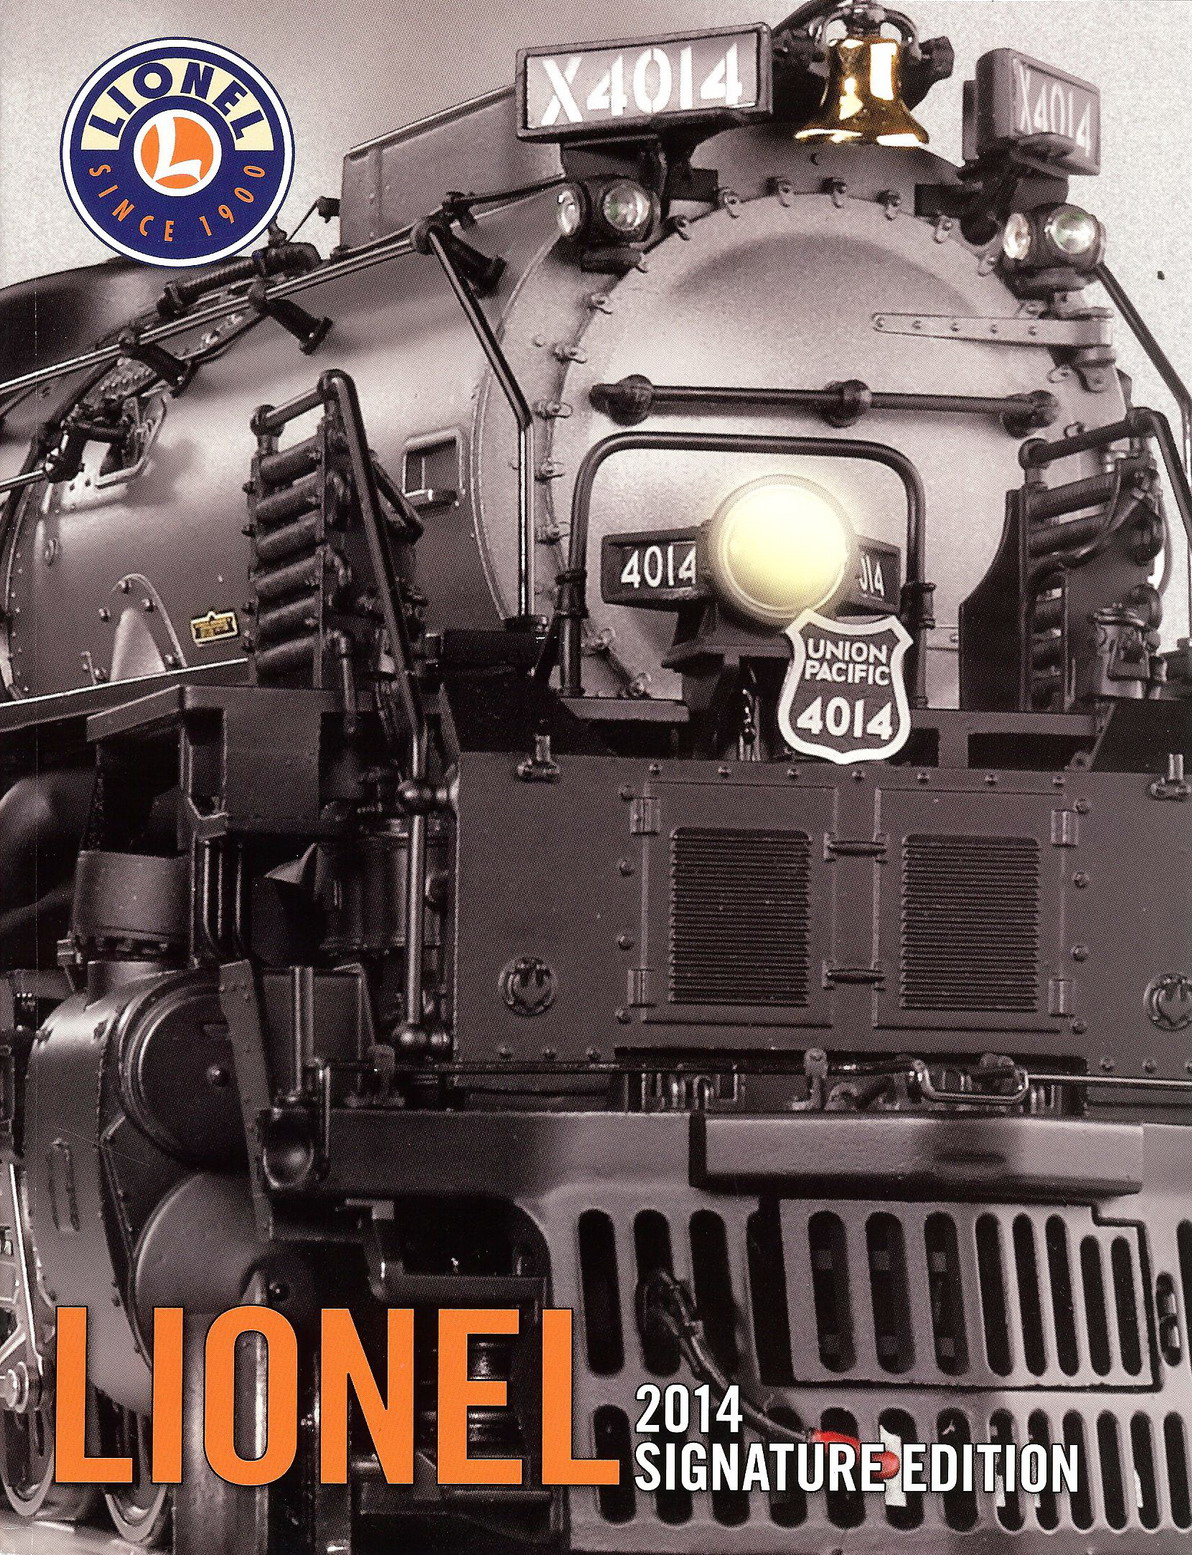 2014 Lionel Trains Signature Edition Catalog. Mint Condition.